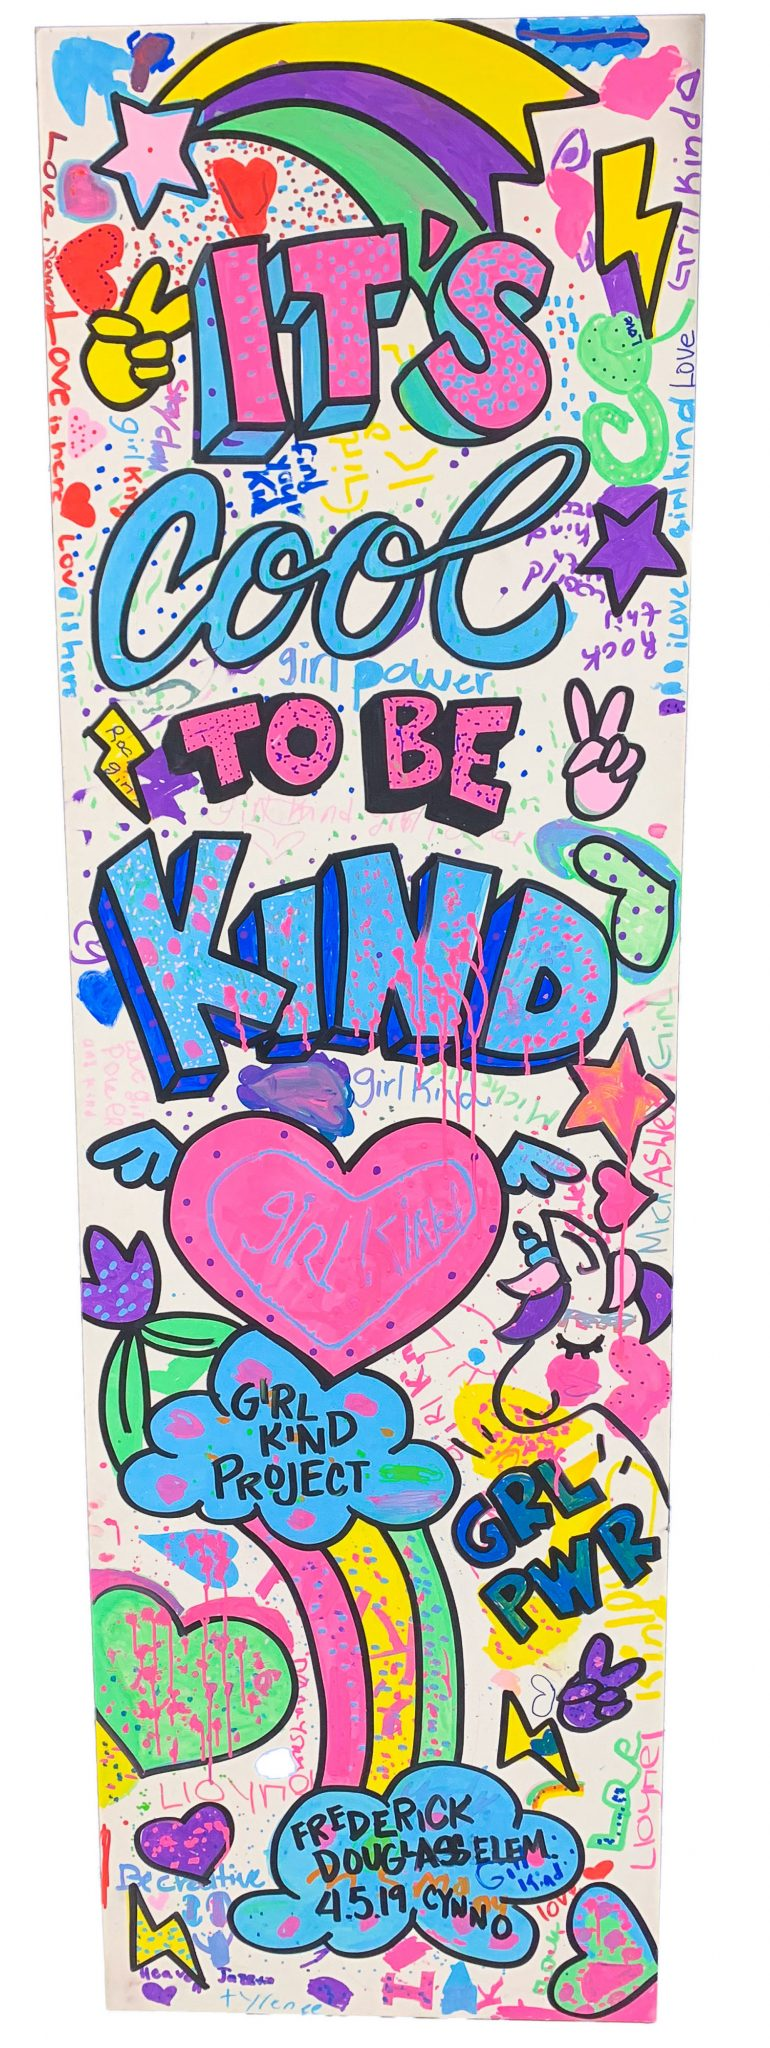 GirlKind Project participants created the door to kindness with the help of Cinthia Santos